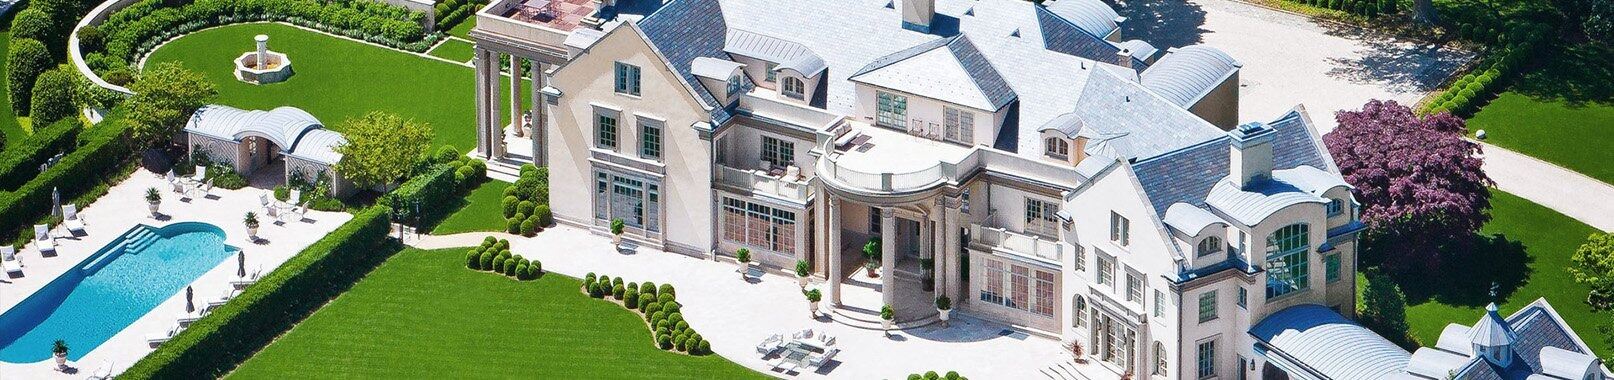 <p>Luxury estate agency. Luxury homes and property for sale and rent. Photo</p>  2